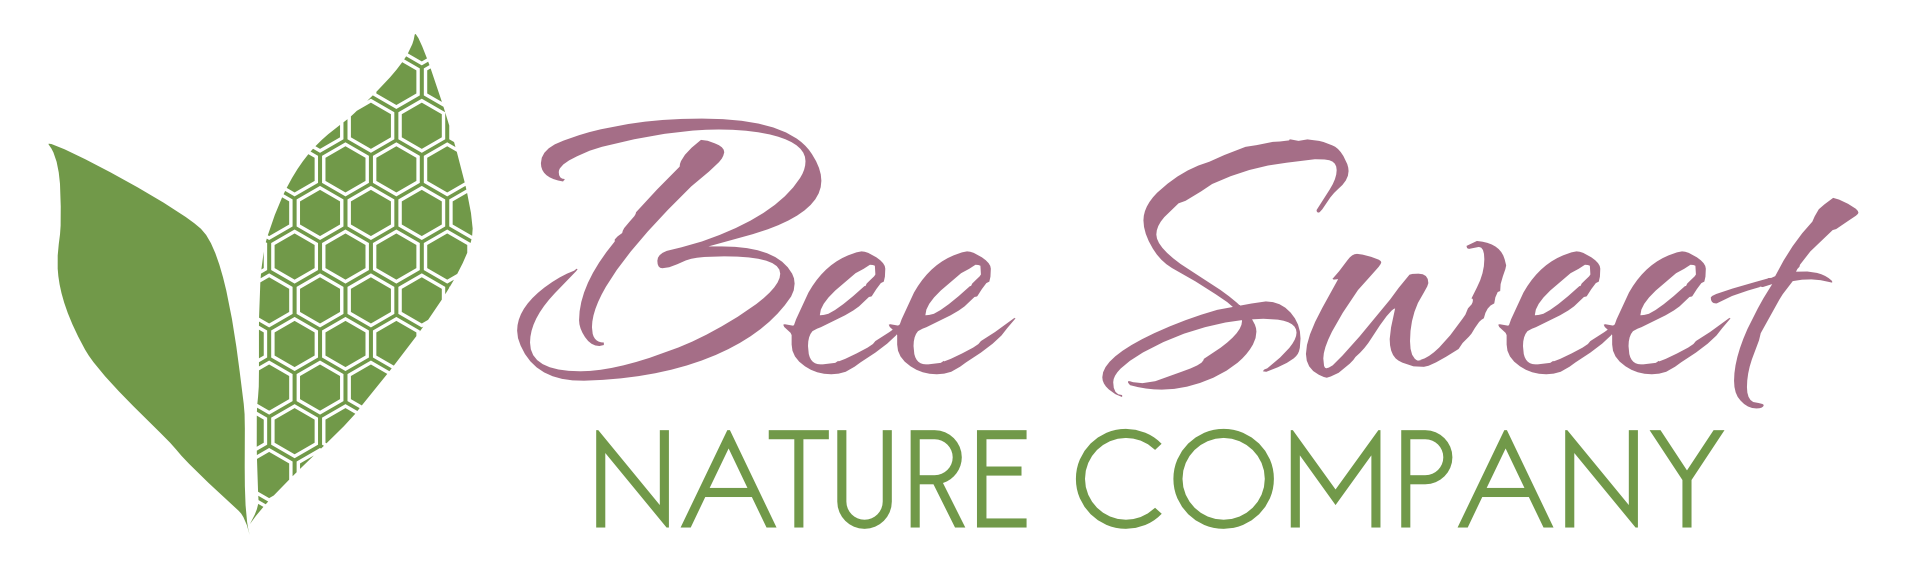 Bee Sweet Nature Co.